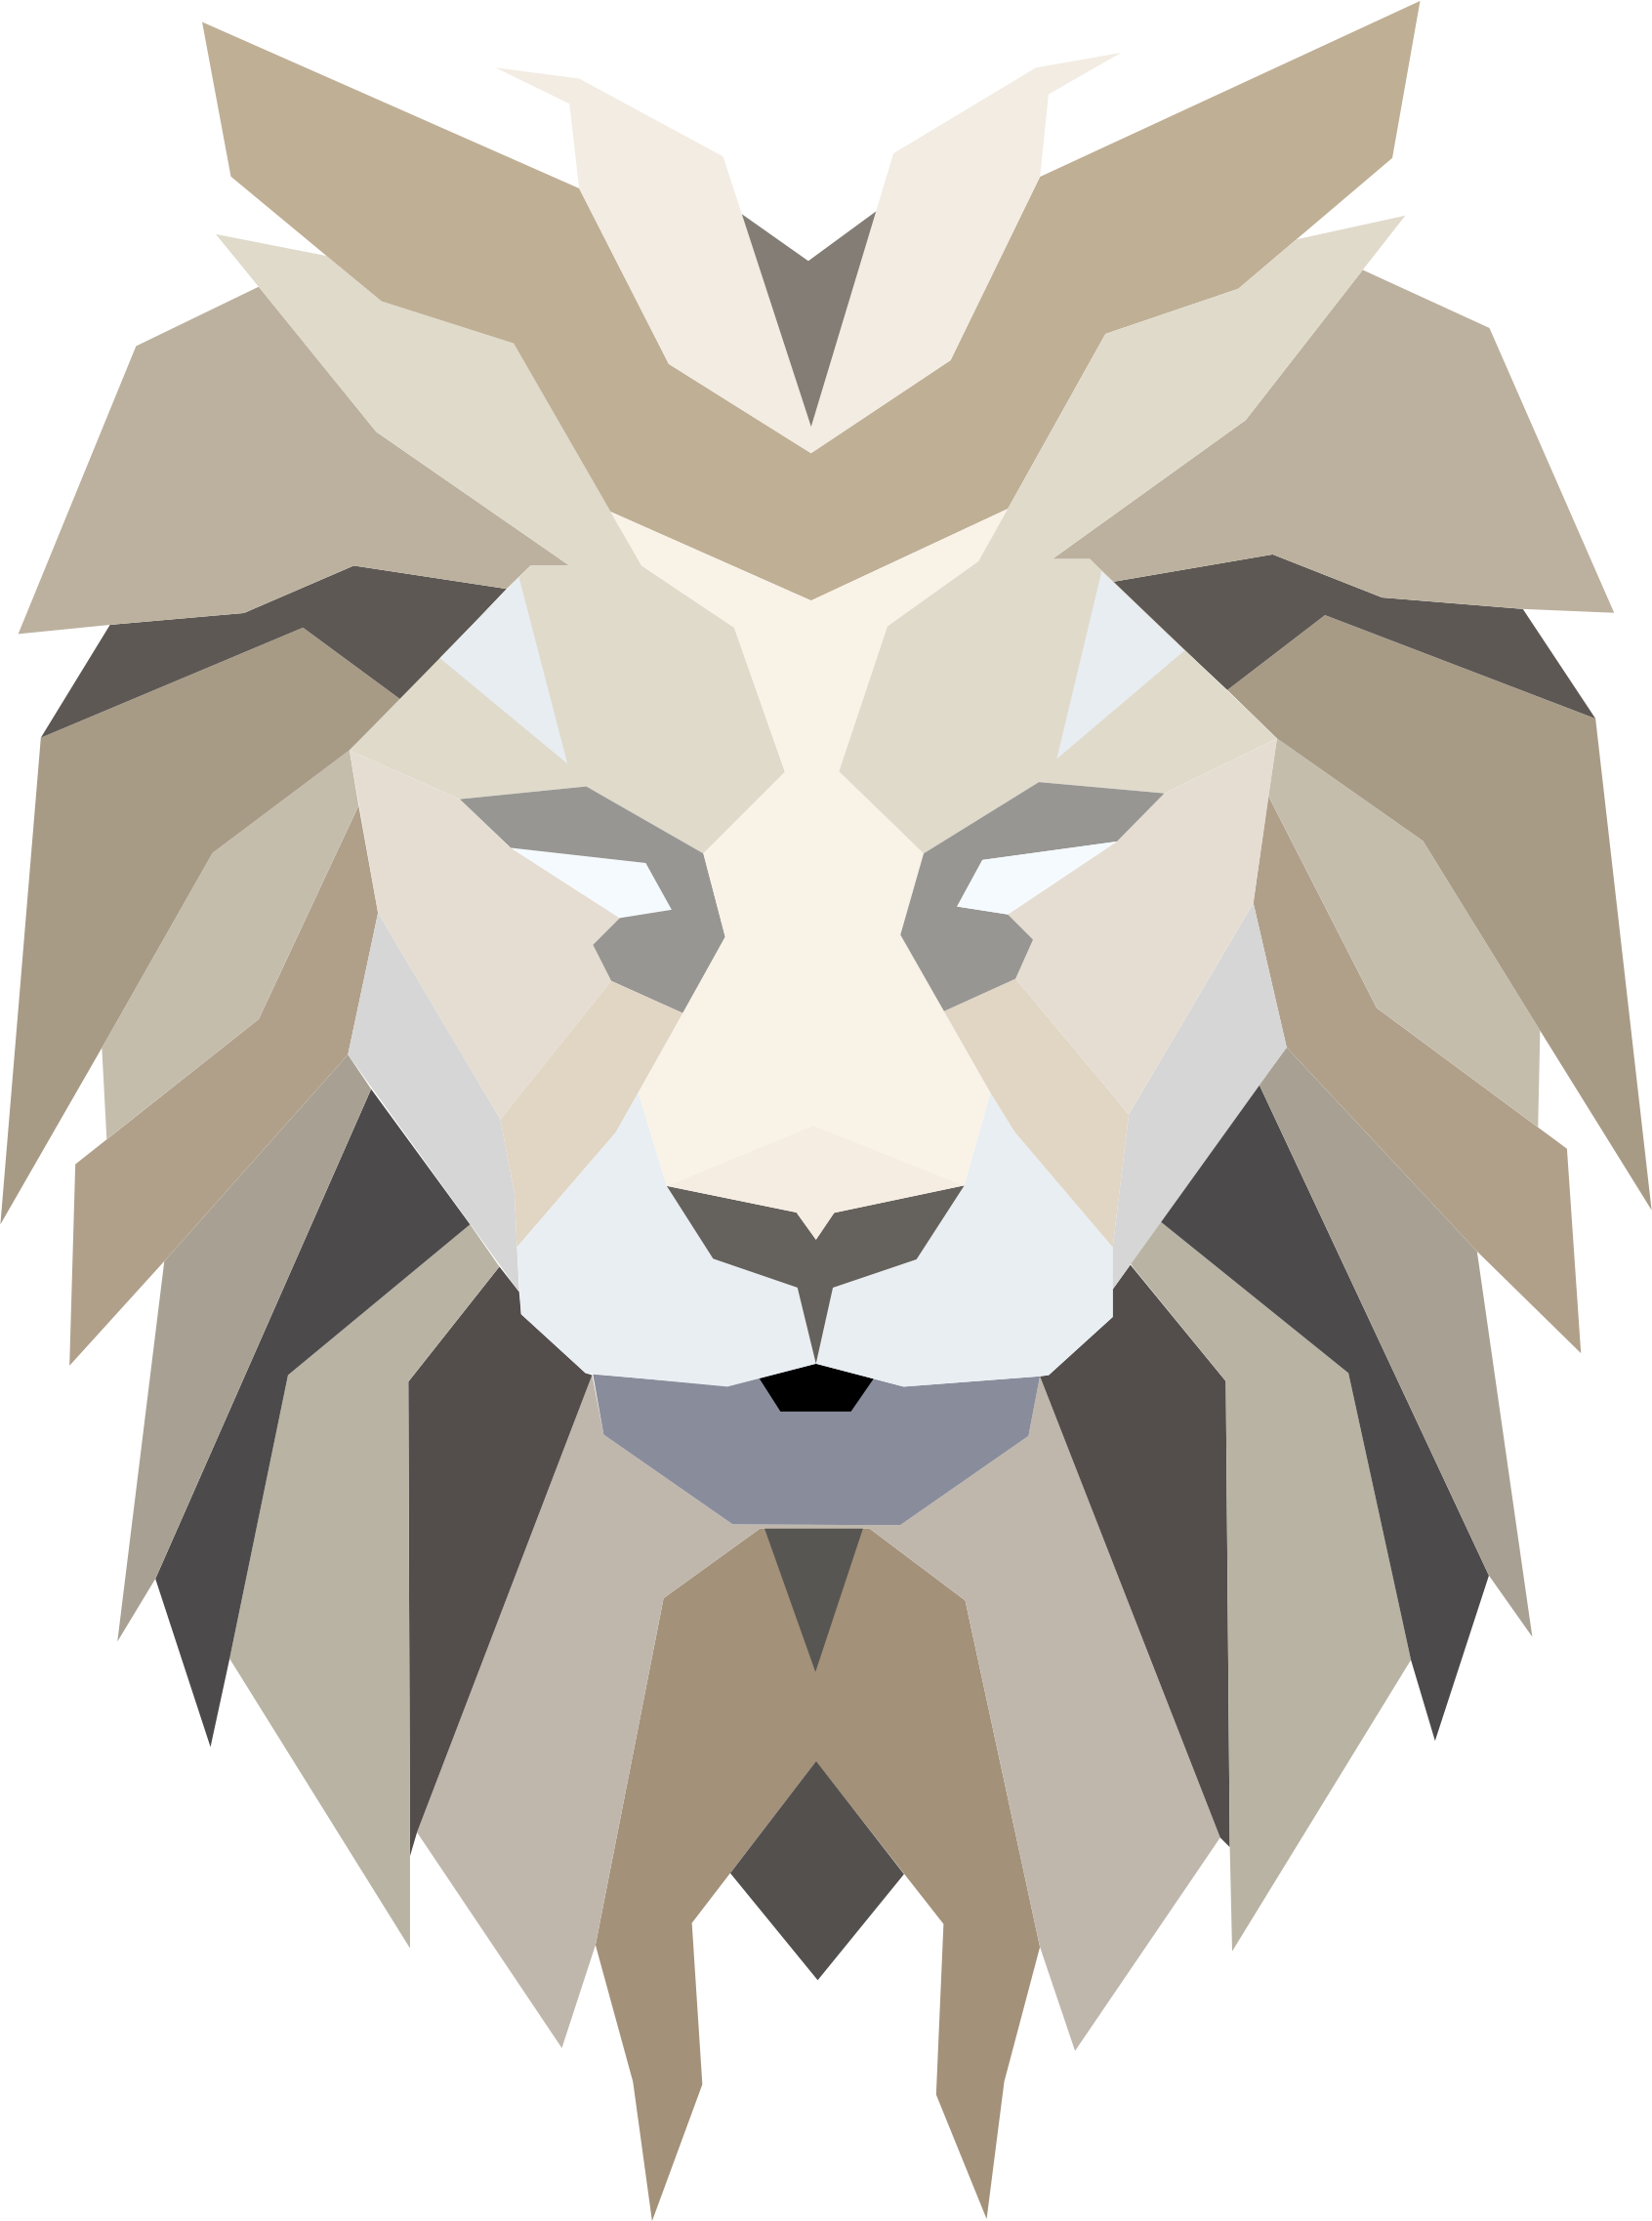 Clipart - Polygonal Lion Face